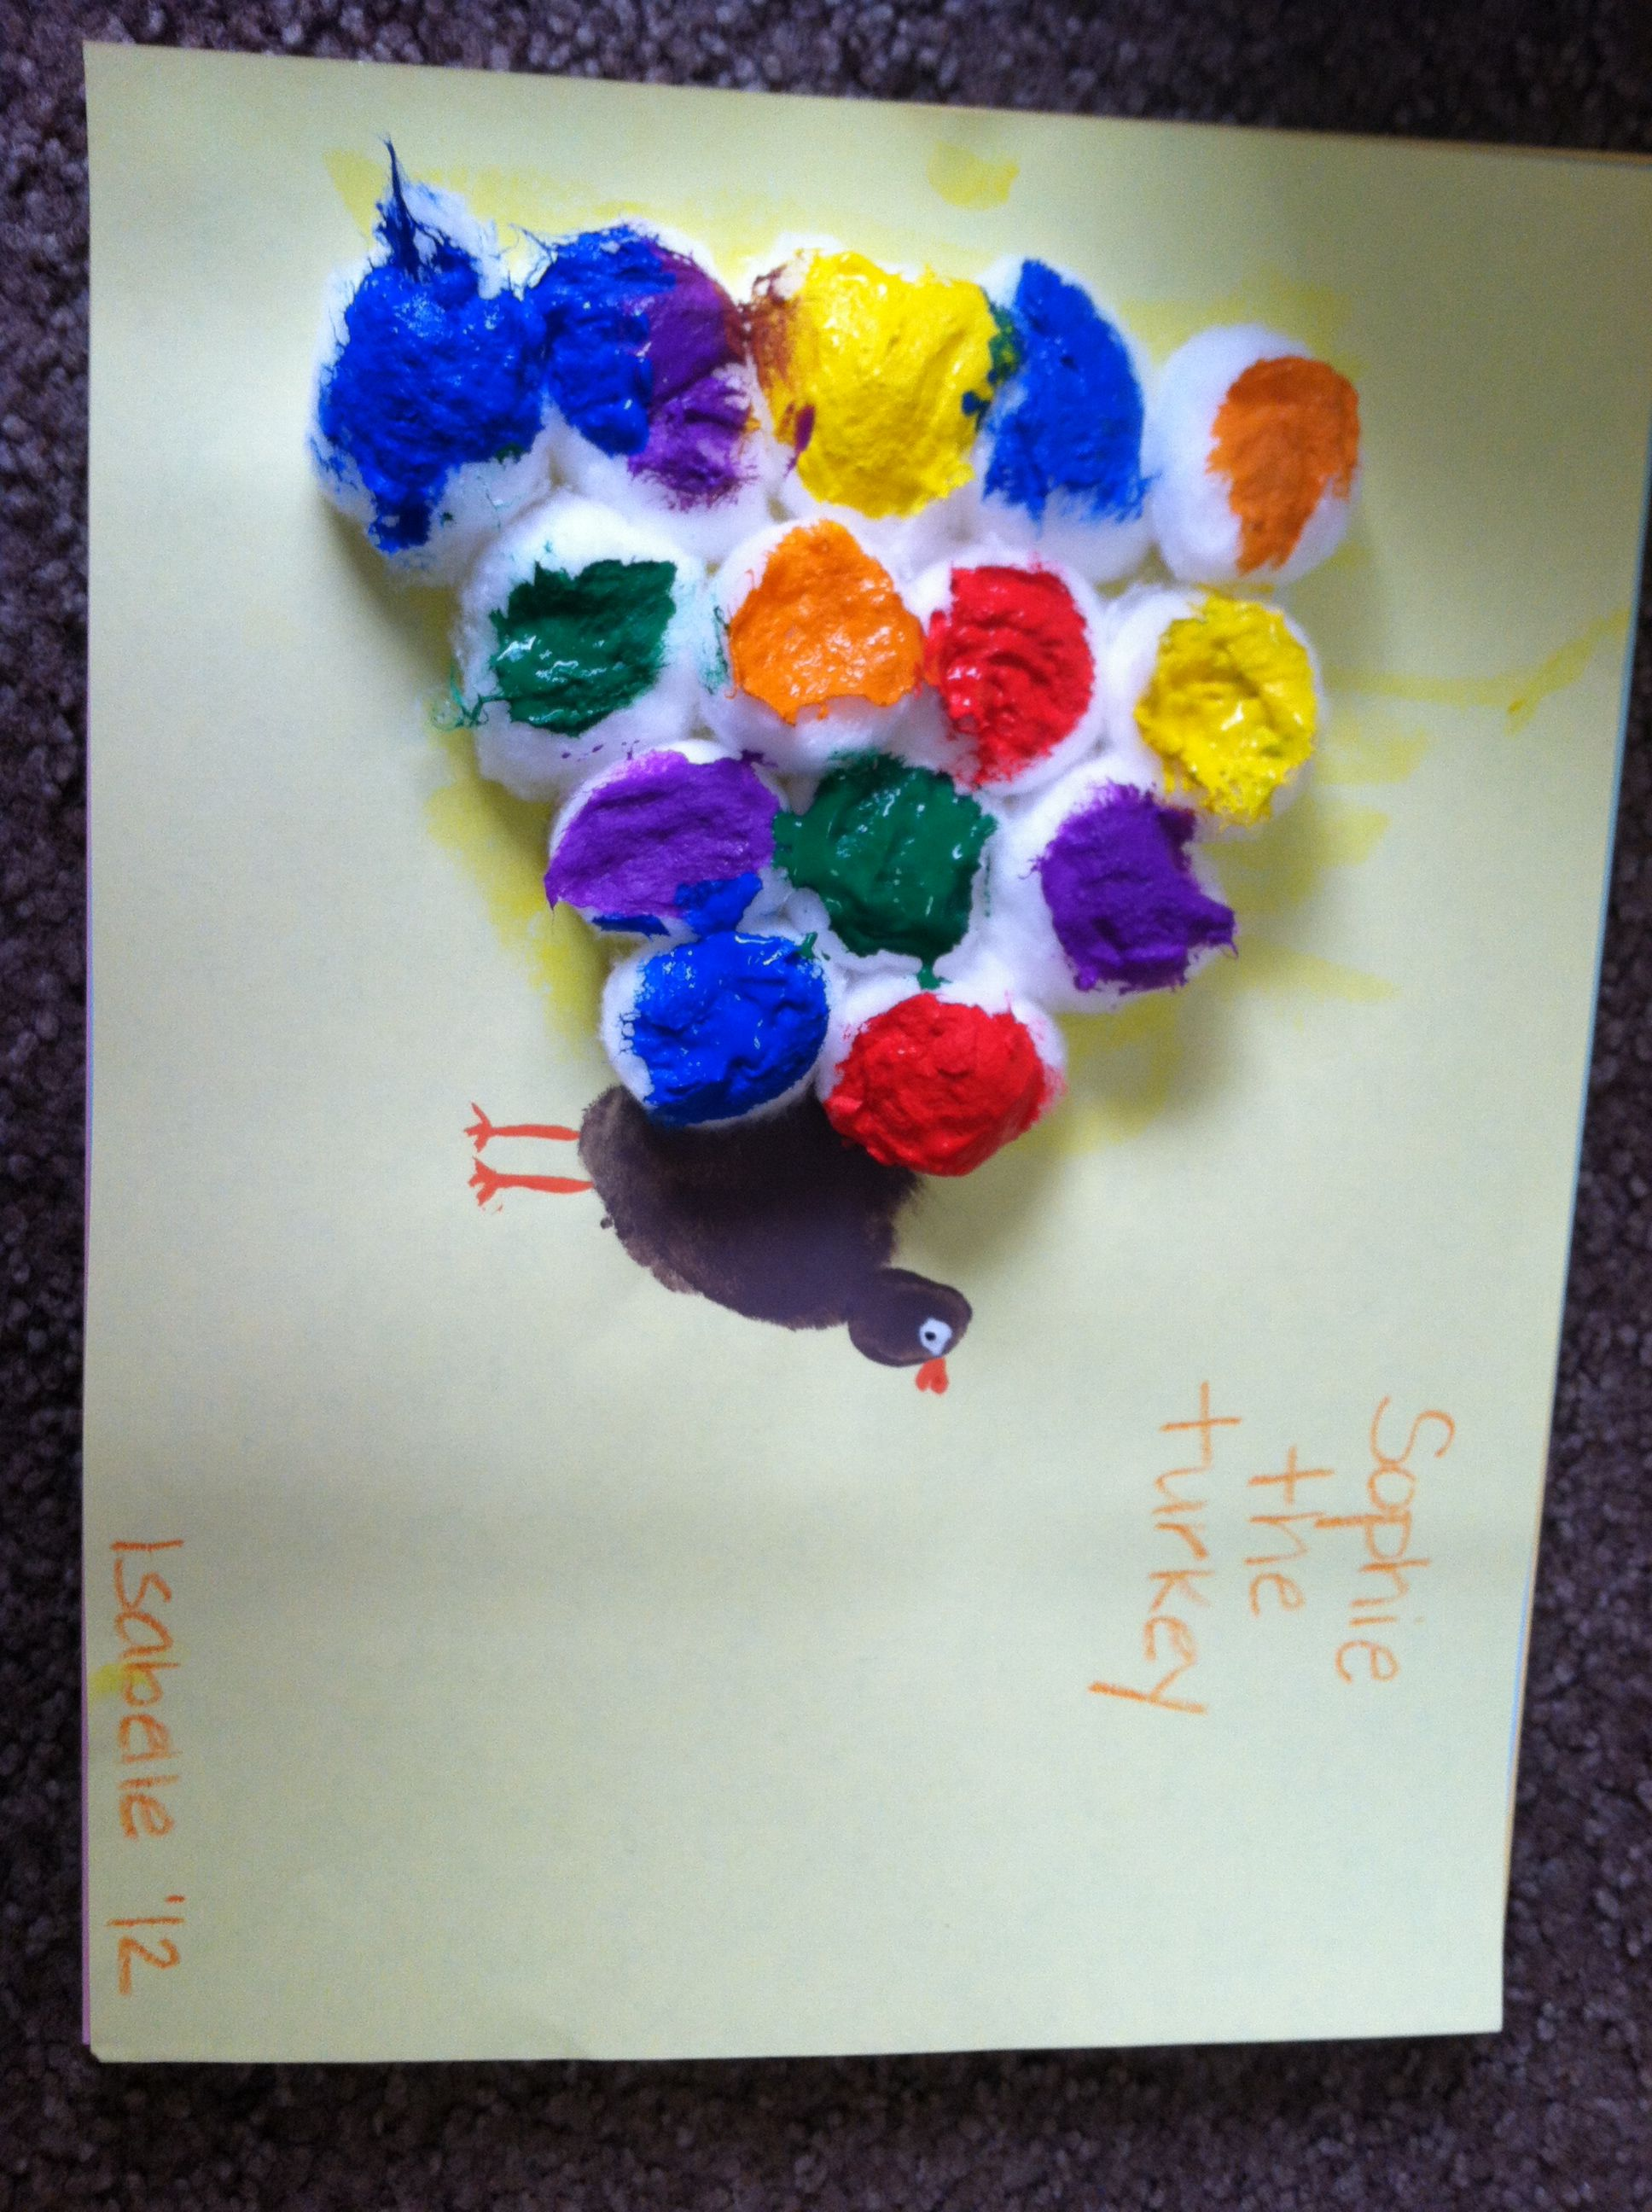 Thanksgiving Crafts I Love Using Cotton Balls With Paint With My 2 Year Olds They Do Really